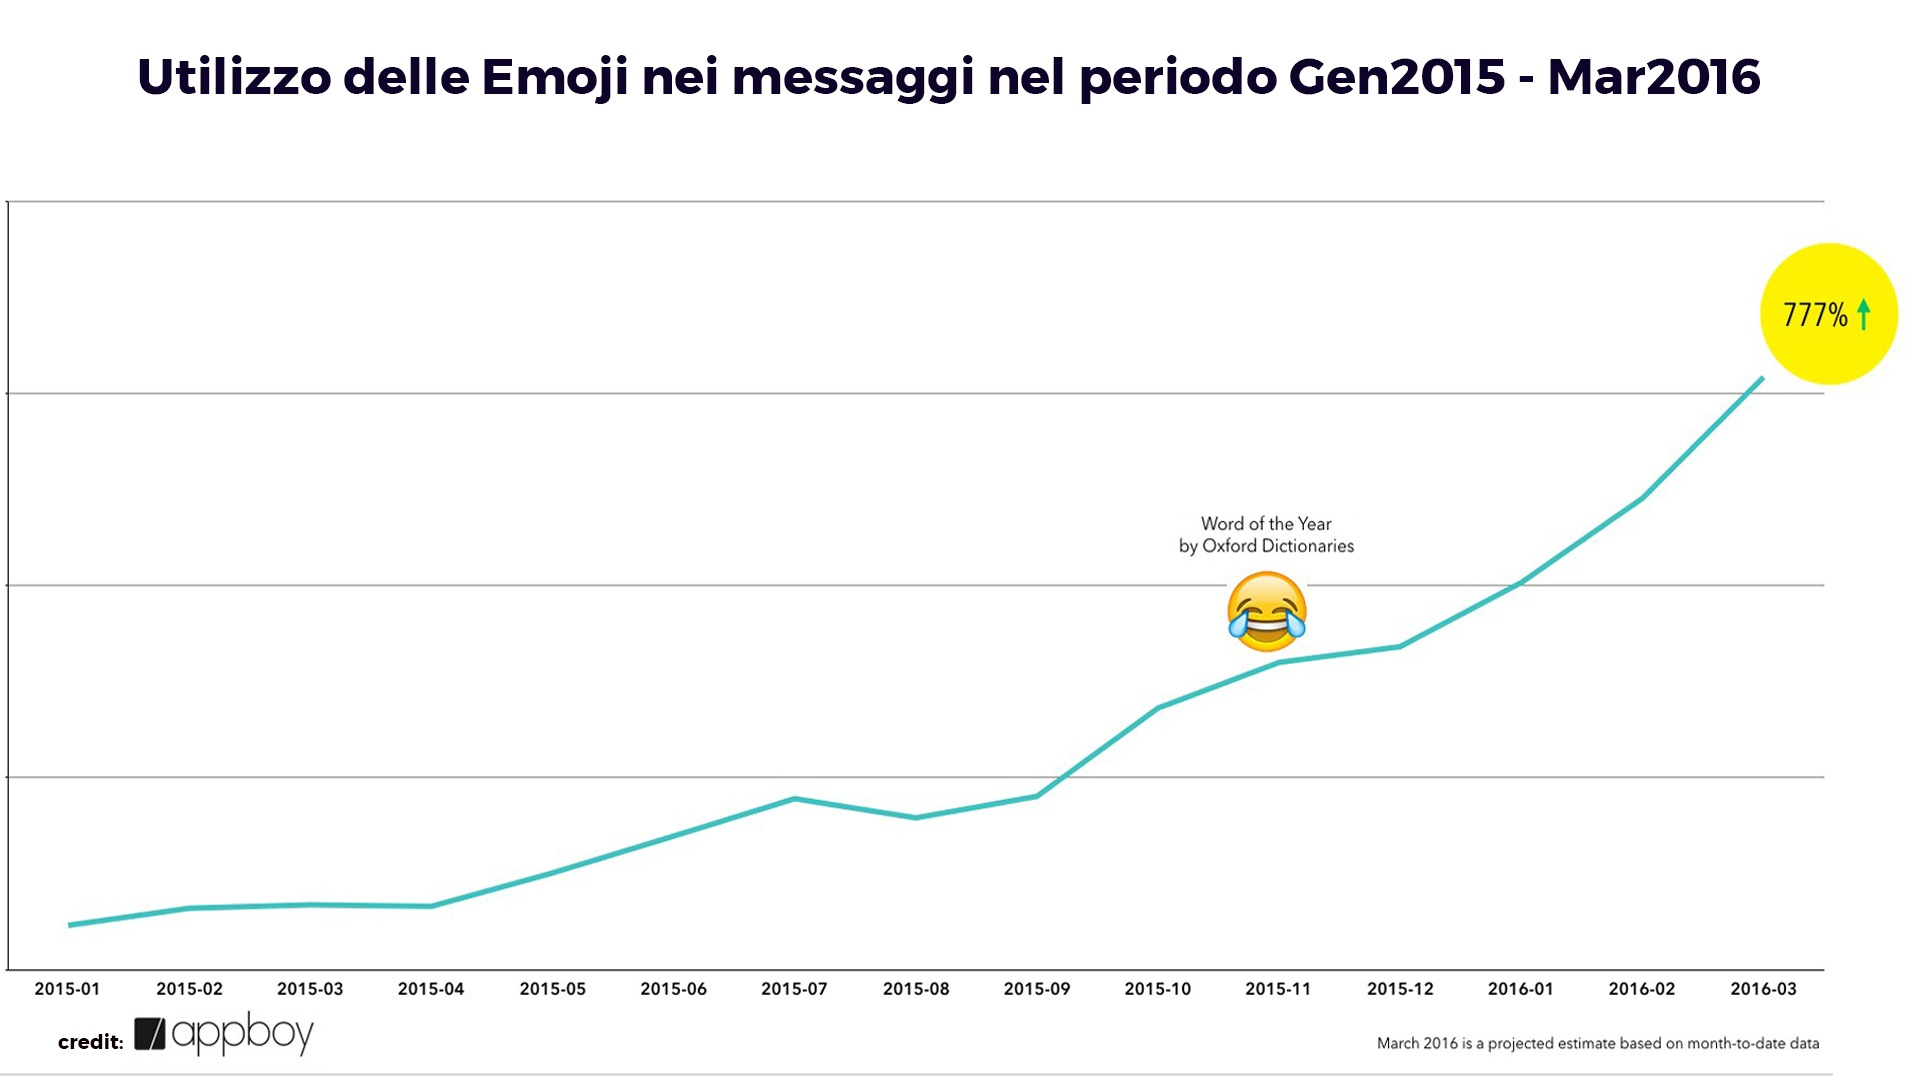 emoji-usage-message-appboy